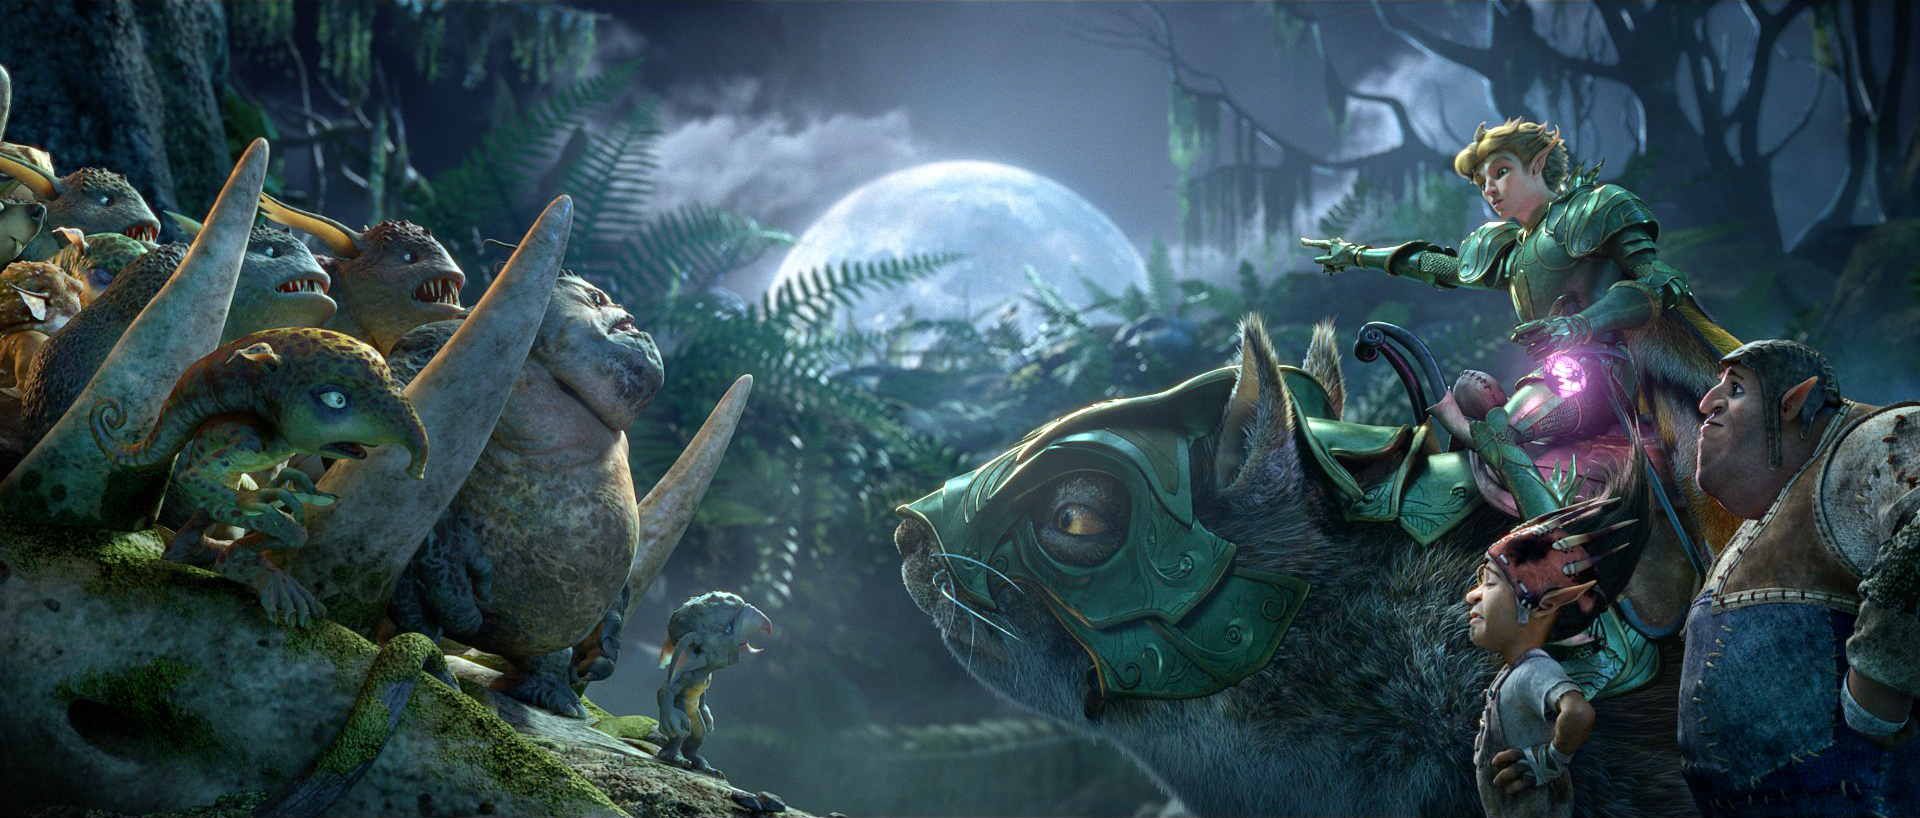 strange magic image Lucasfilm Touchstone